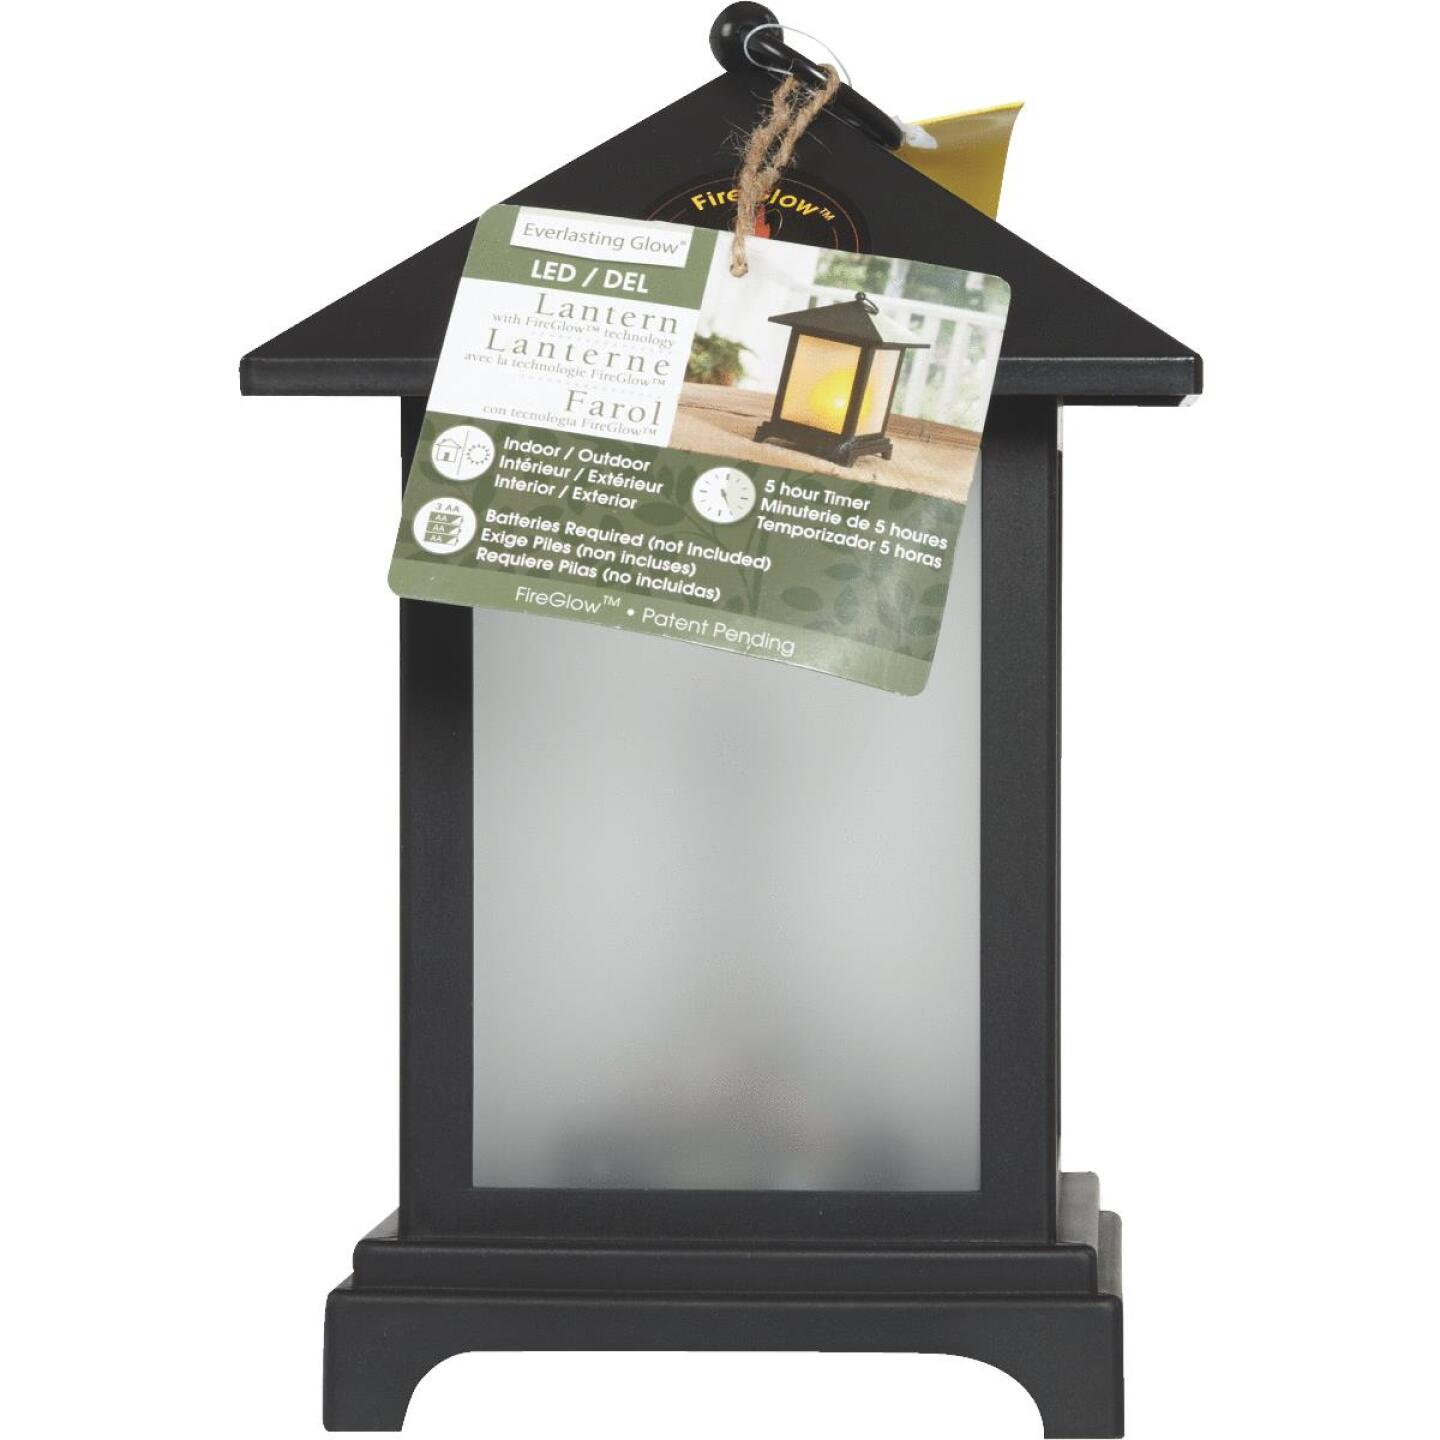 Everlasting Glow 4.13 In W. x 9.25 In. H. x 4.13 In. L. Black Square Patio Lantern Image 2